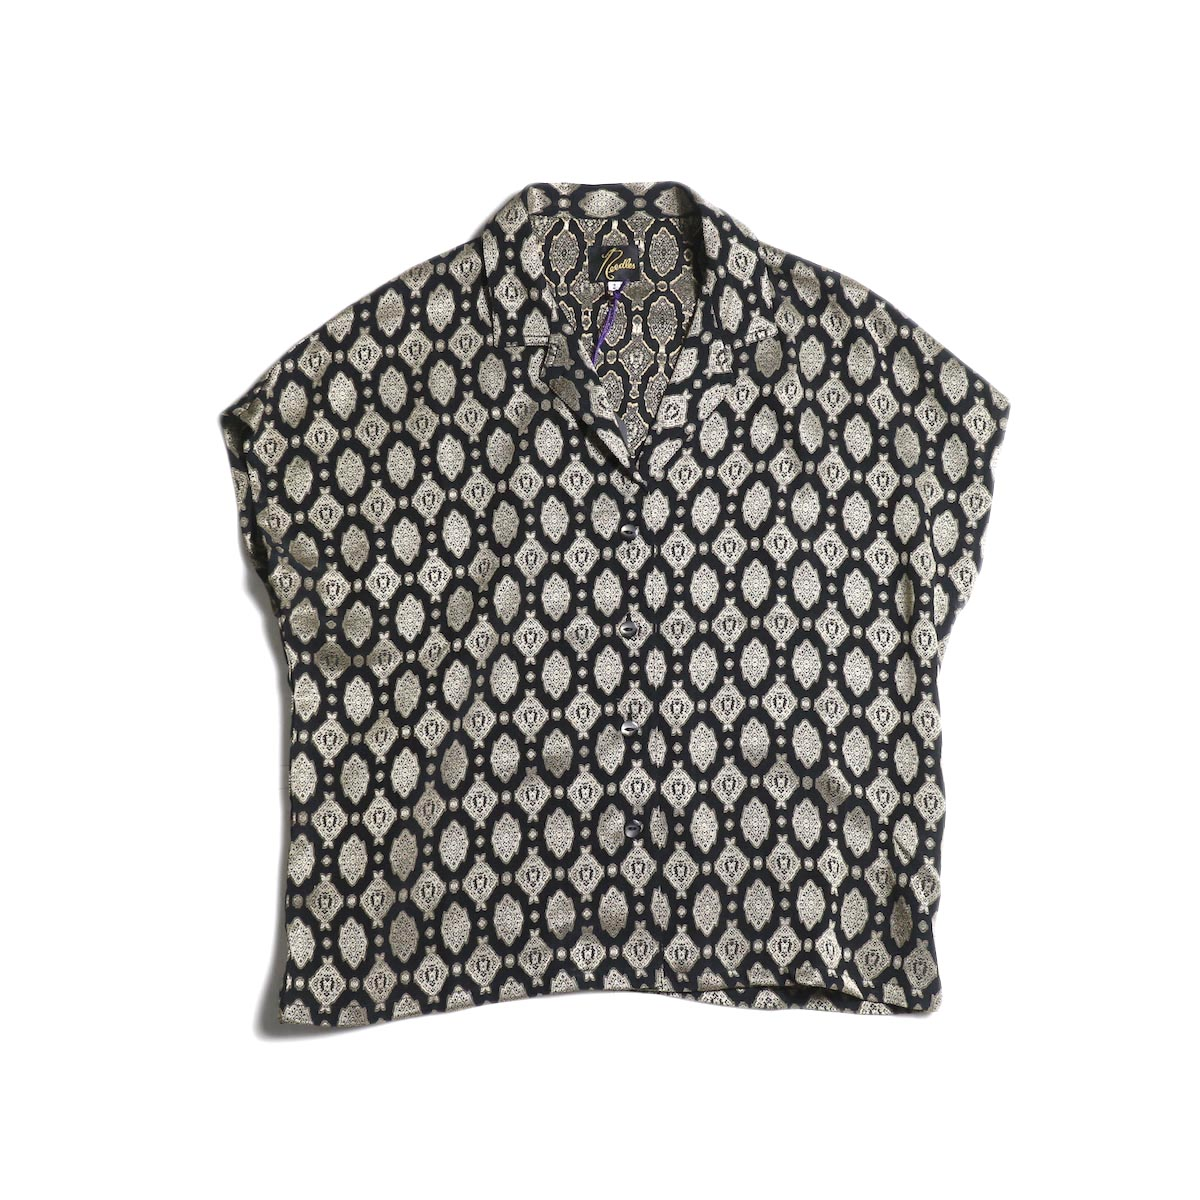 Needles / French Sleeve Blouse -Cu/Ac Jacquard / Fine Pattern (Charcoal)